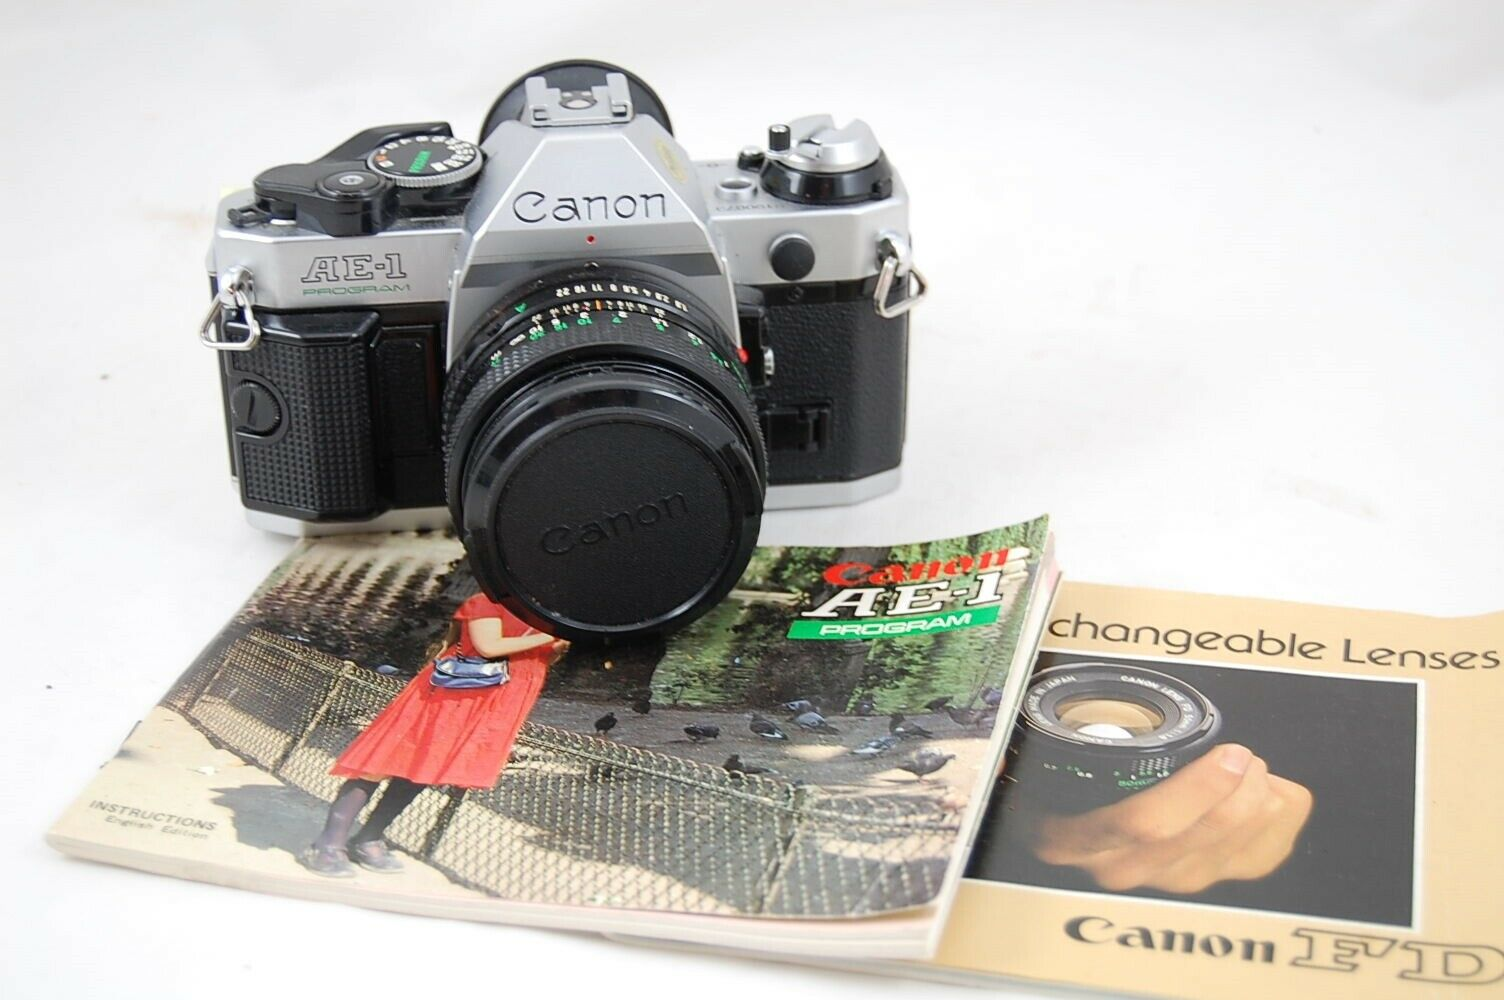 Canon AE-1 Program Camera With FD 50mm 1.8 Lens - $133.50